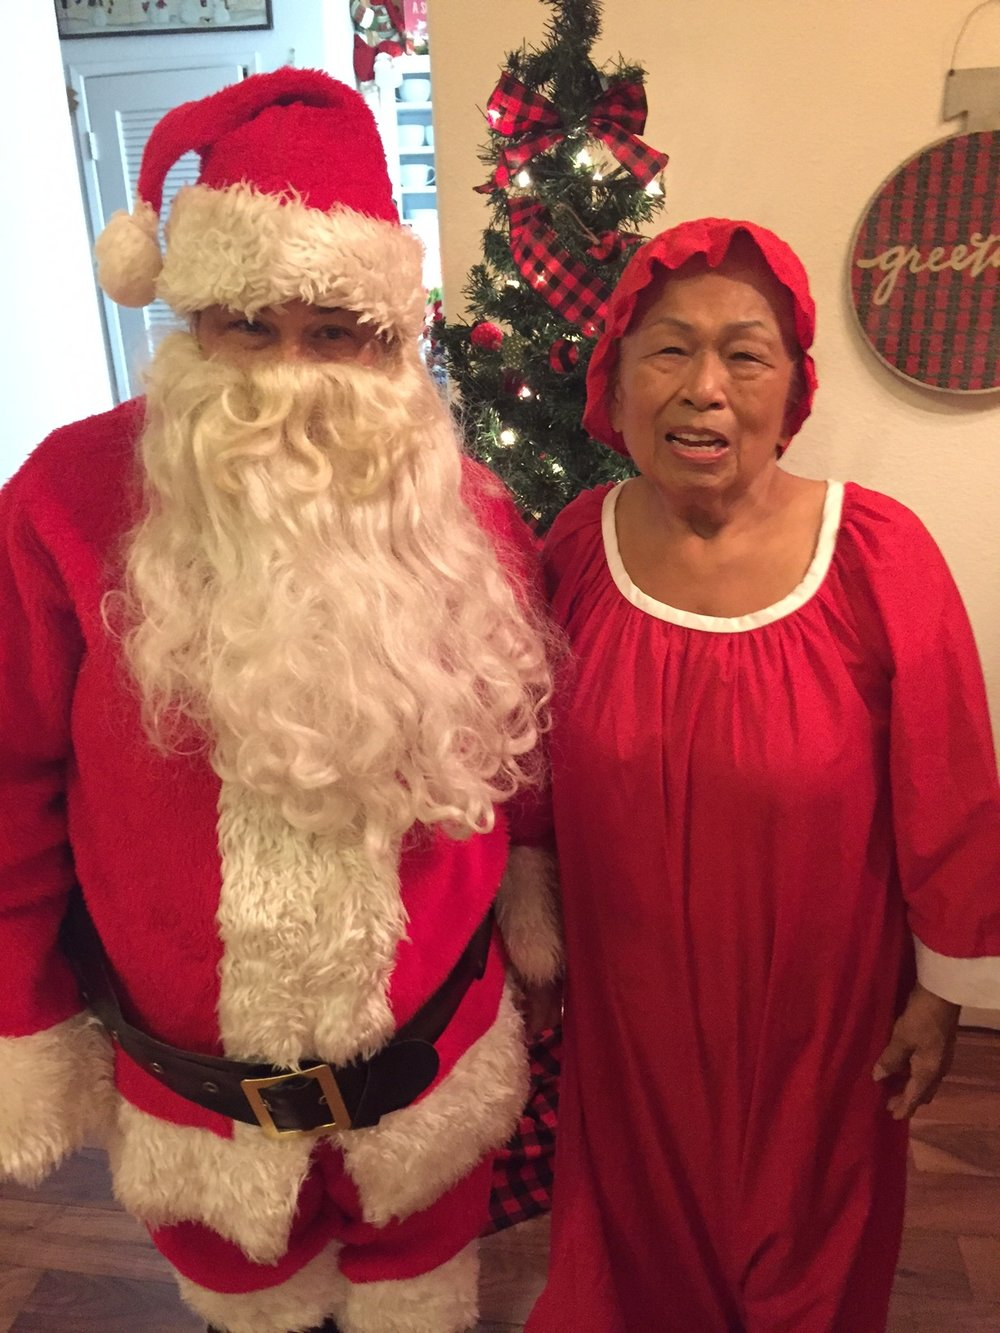 Santa and Mrs. Claus Surprise visit - www.stampedwithaloha